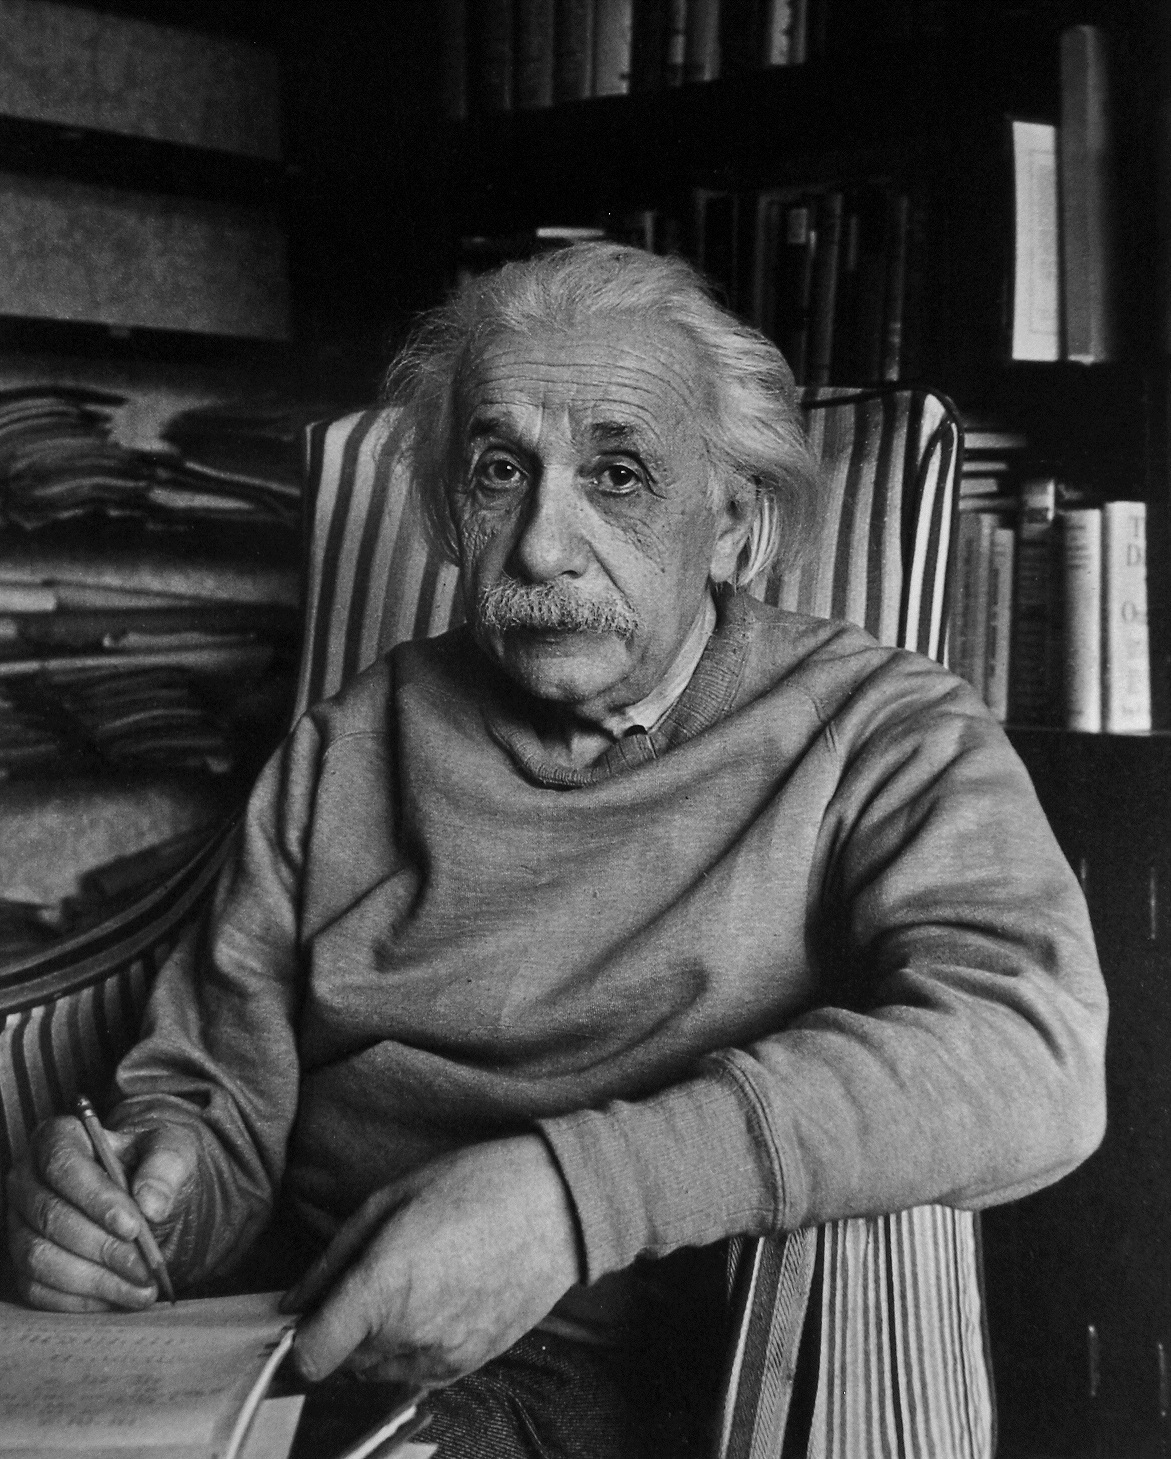 Albert Einstein en Imagenes [(SupermeGarchiPost)]